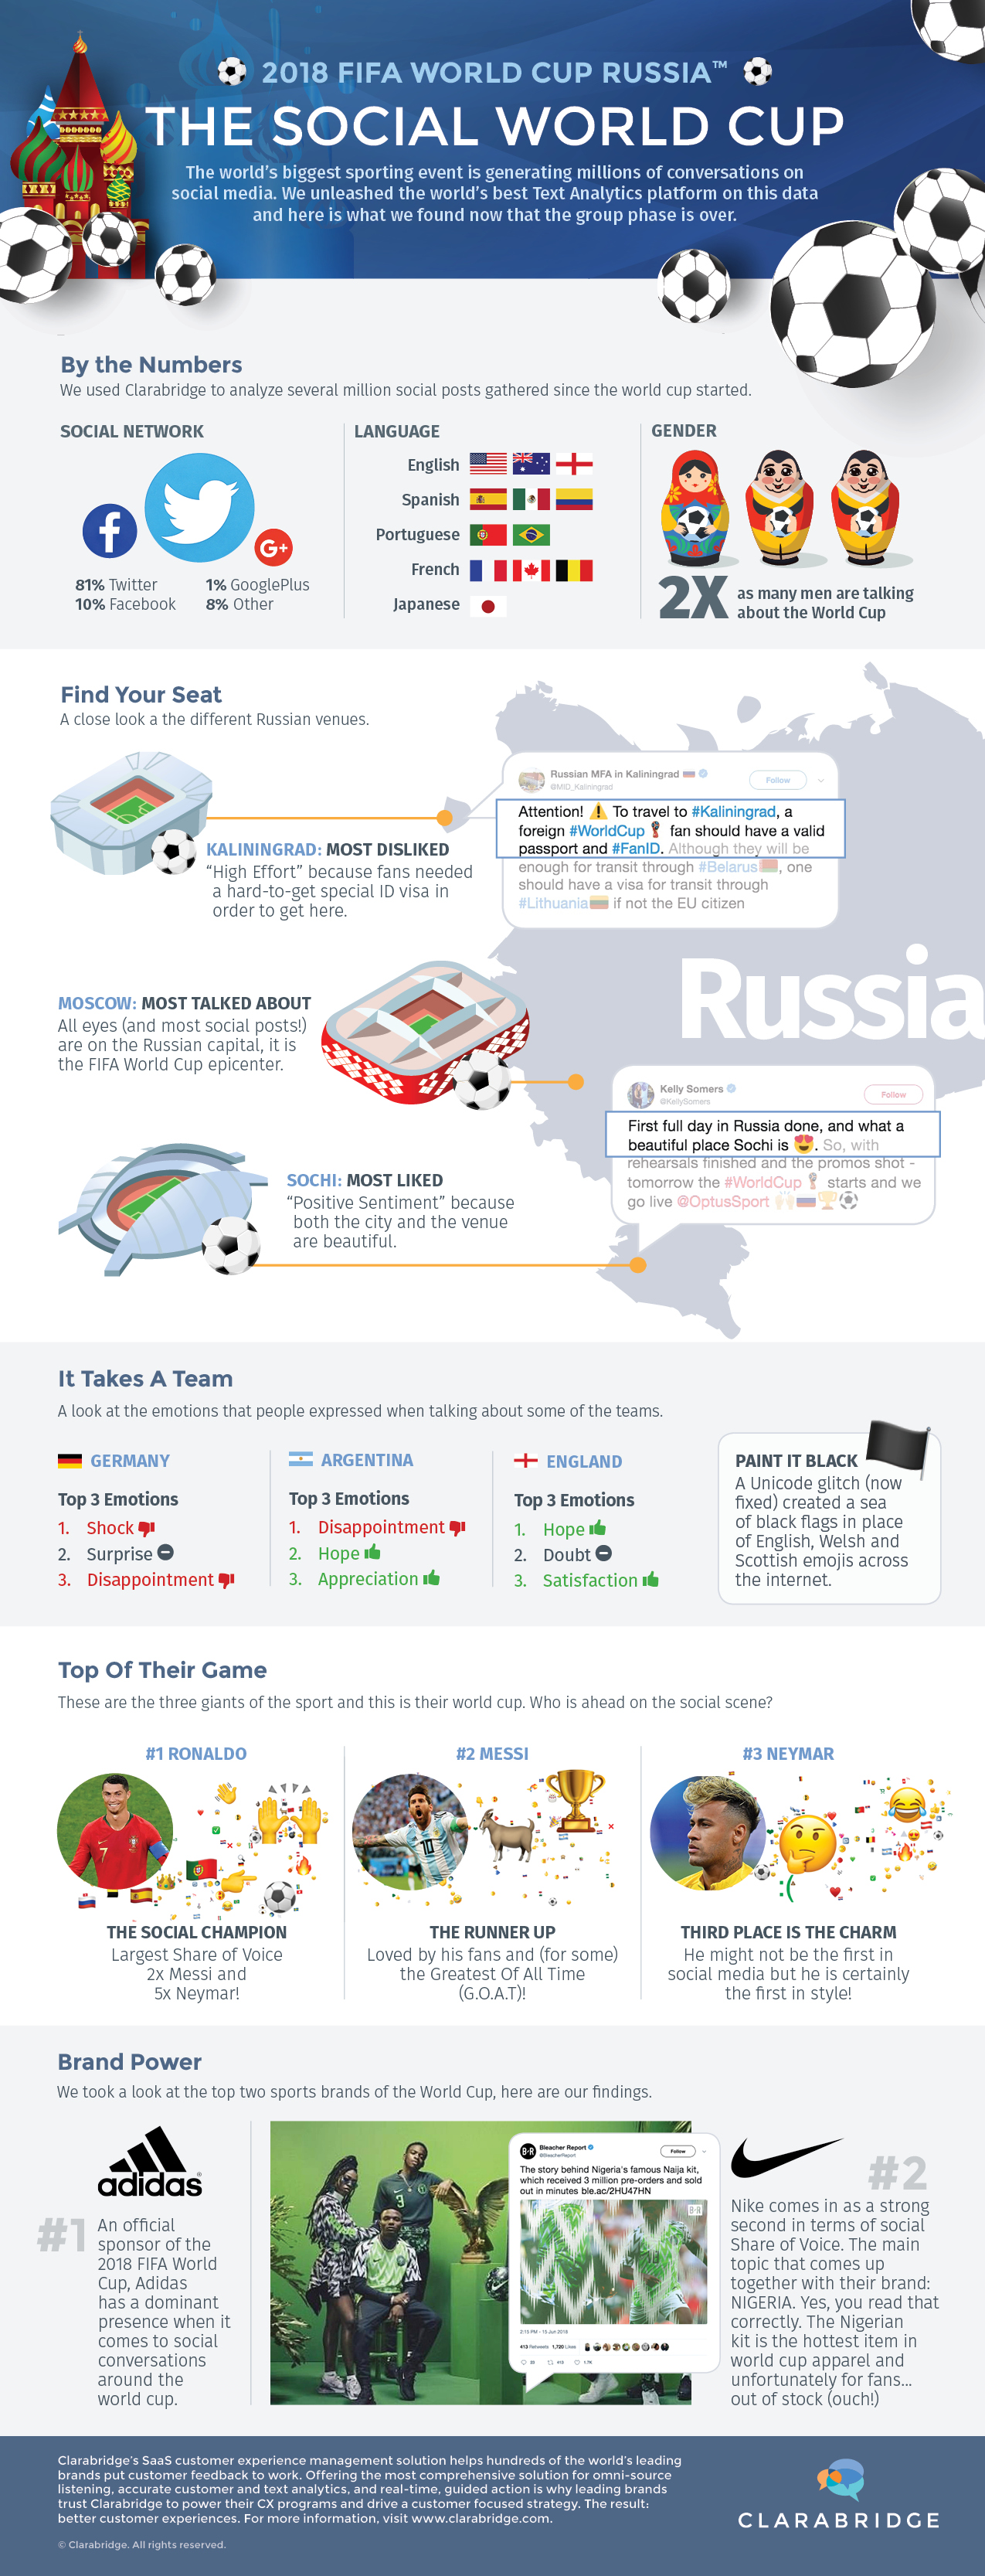 2018 FIFA World Cup infographic